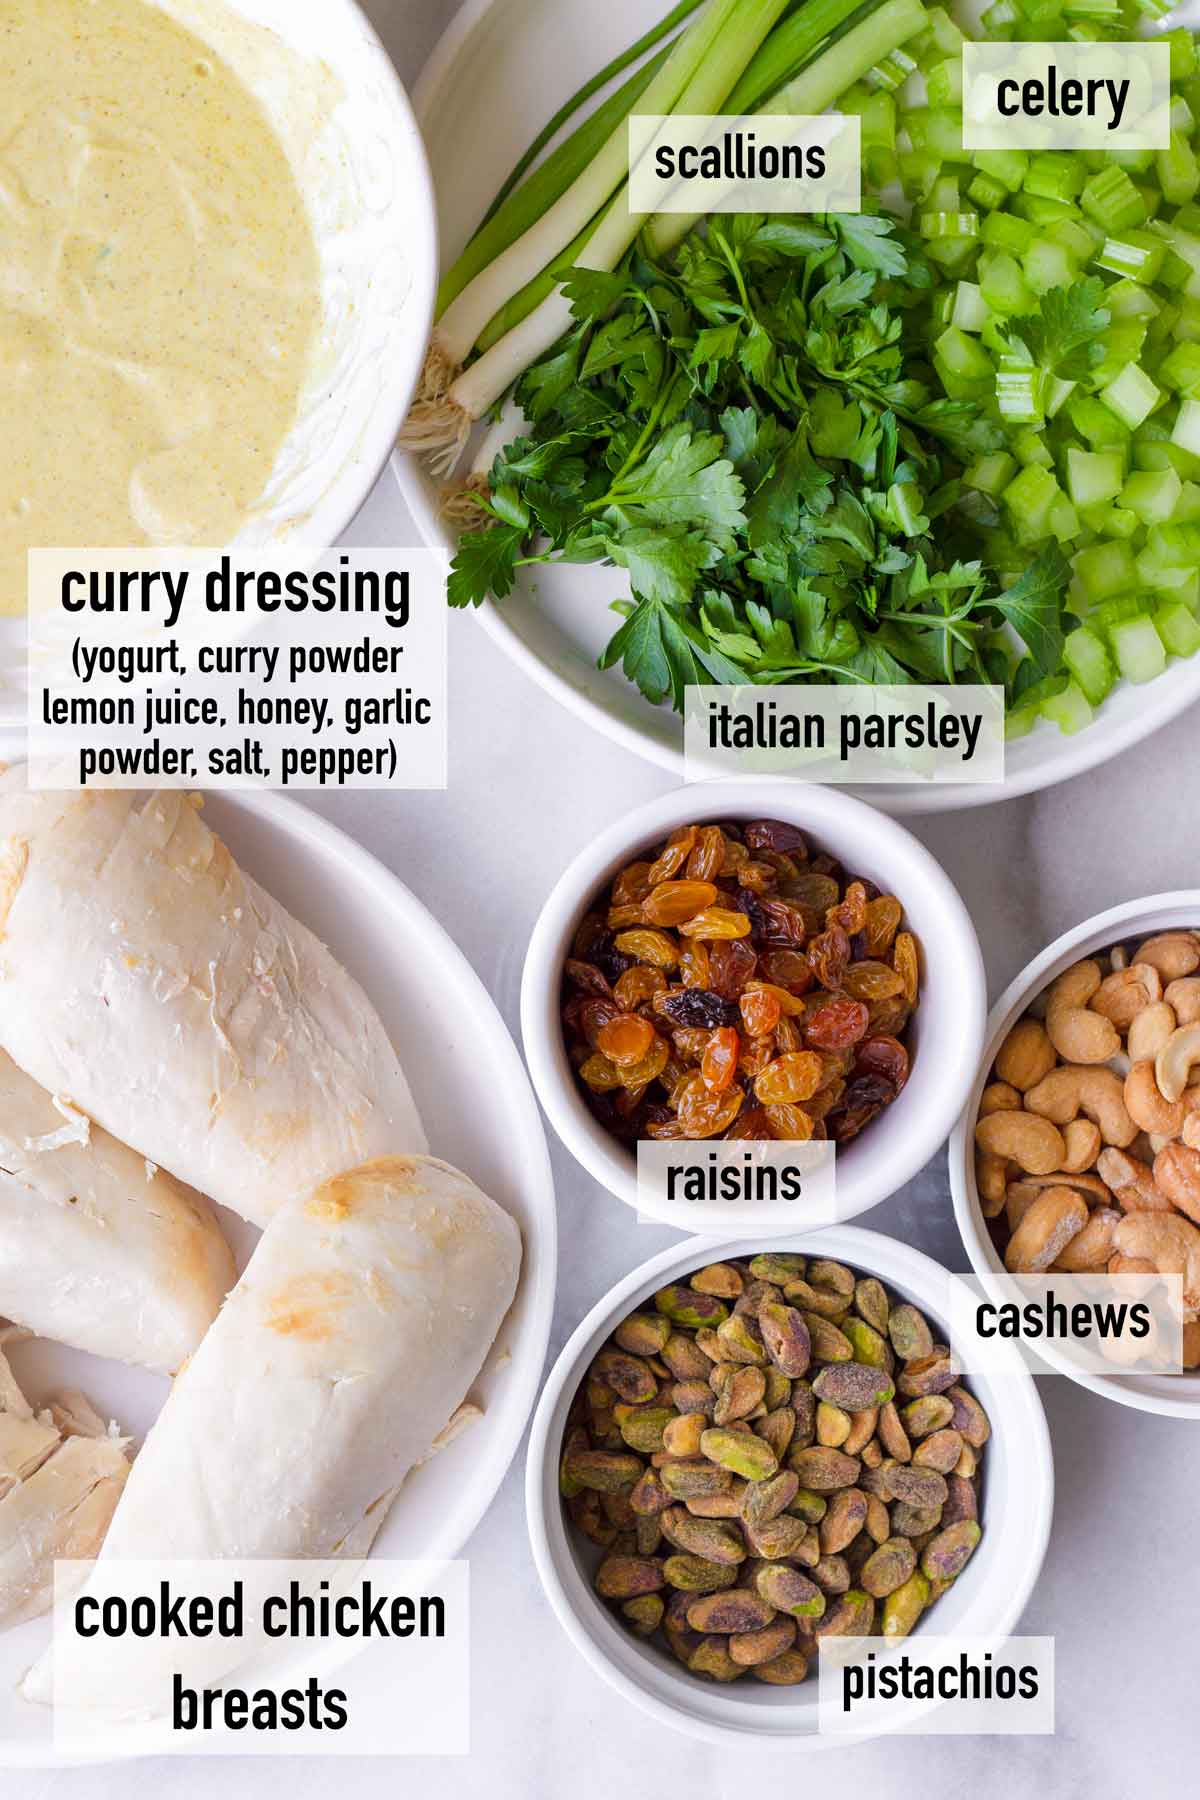 ingredients to make curried chicken salad in small bowls